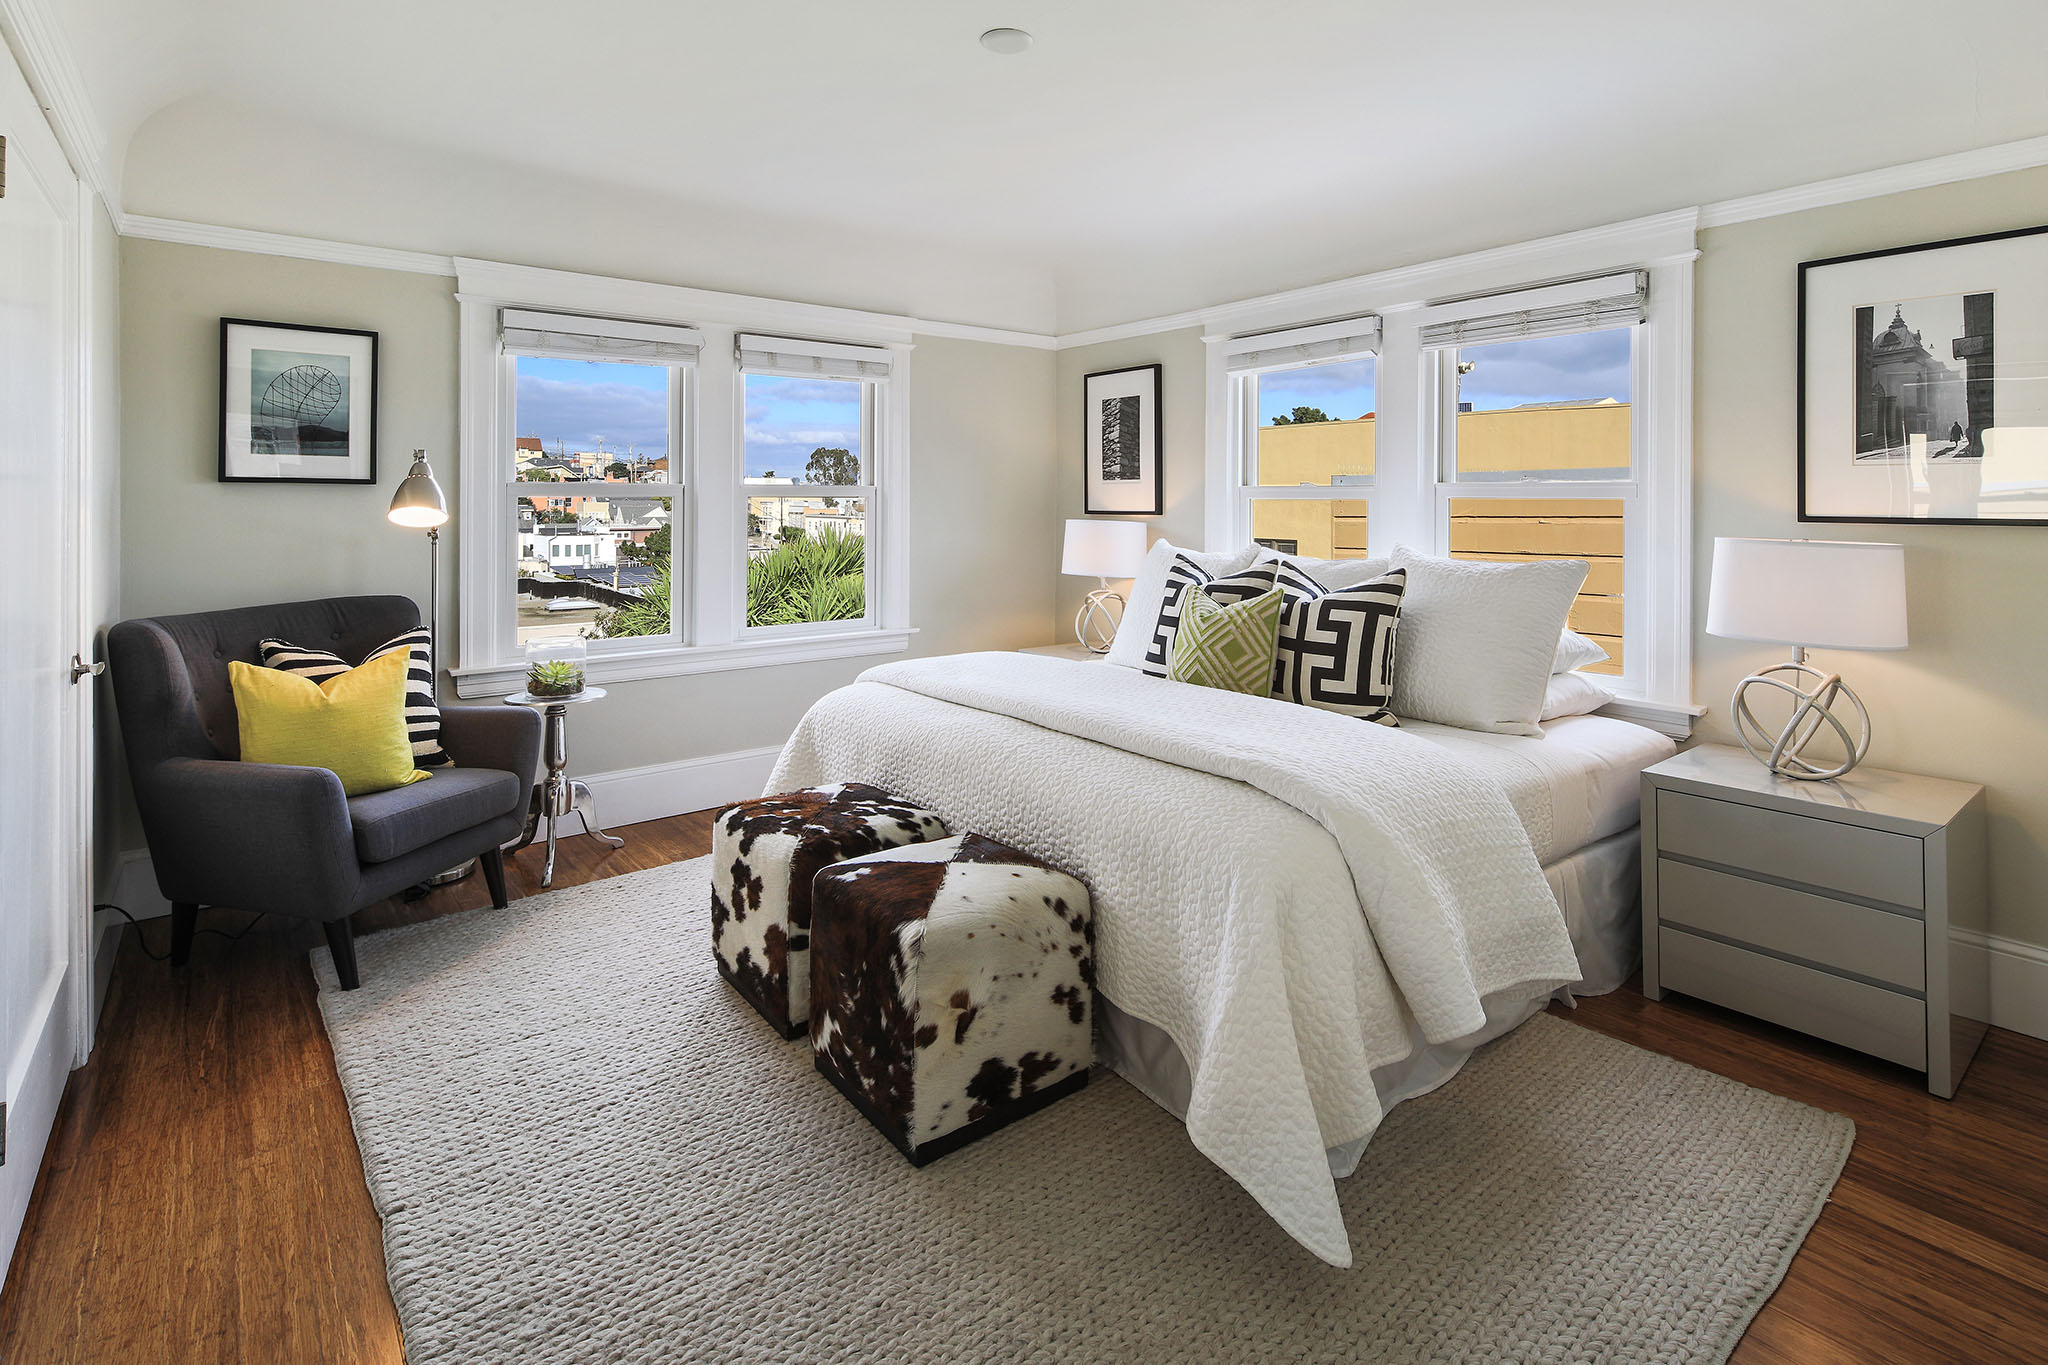 Views of the City and Noe Valley from the Master bedroom.